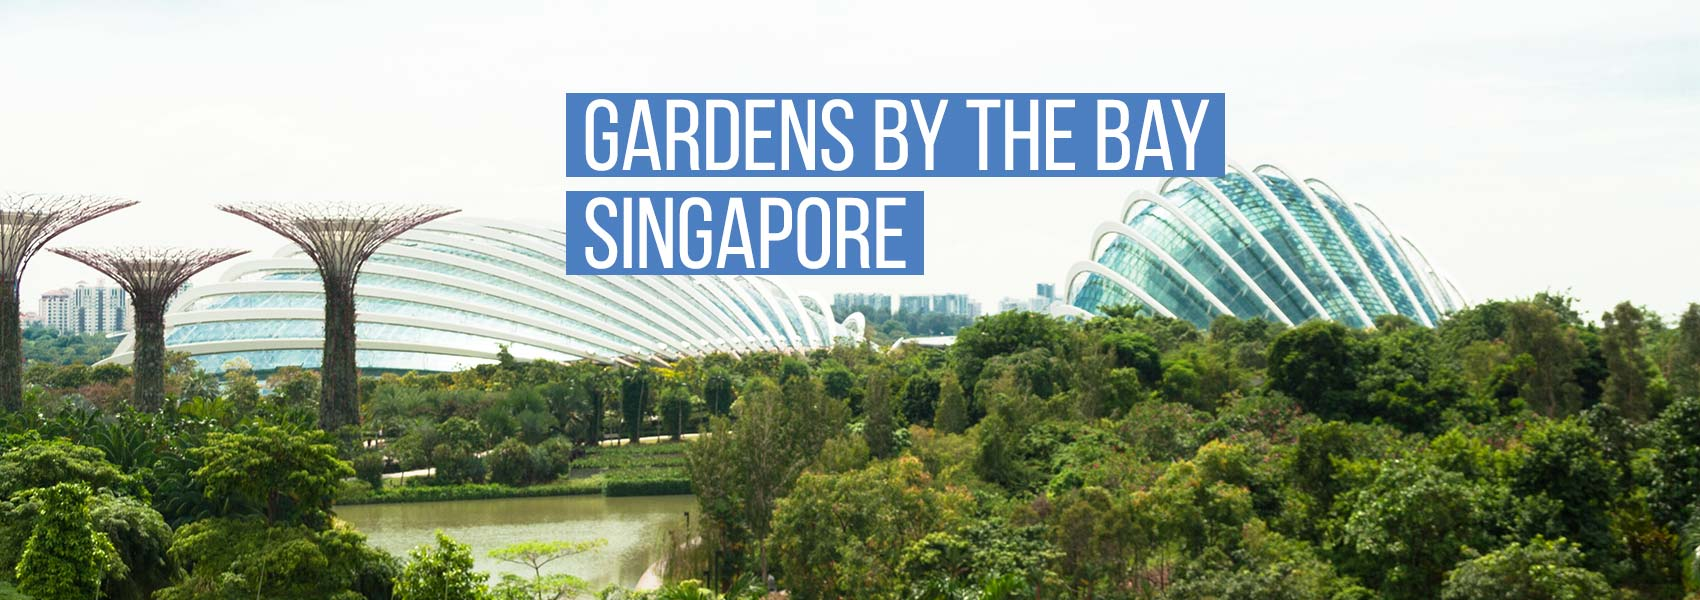 Gardens By The Bay E Ticket Flower Dome Cloud Forest Sahabat Tour Travel Malang